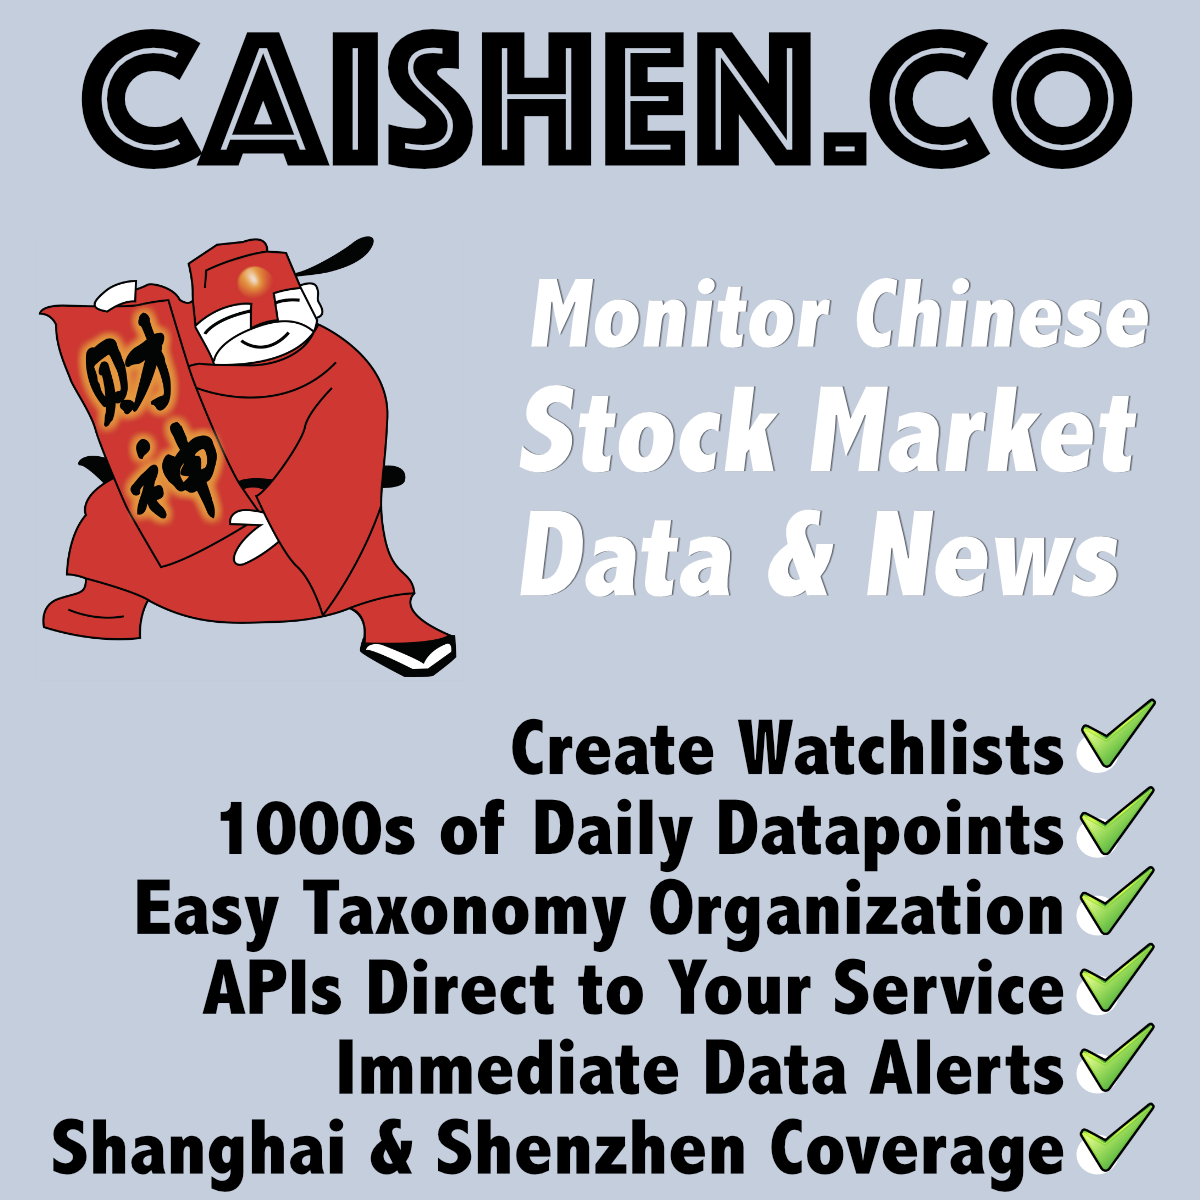 Caishen.Co - Primary Data for China Secondary Investment and Stock Markets